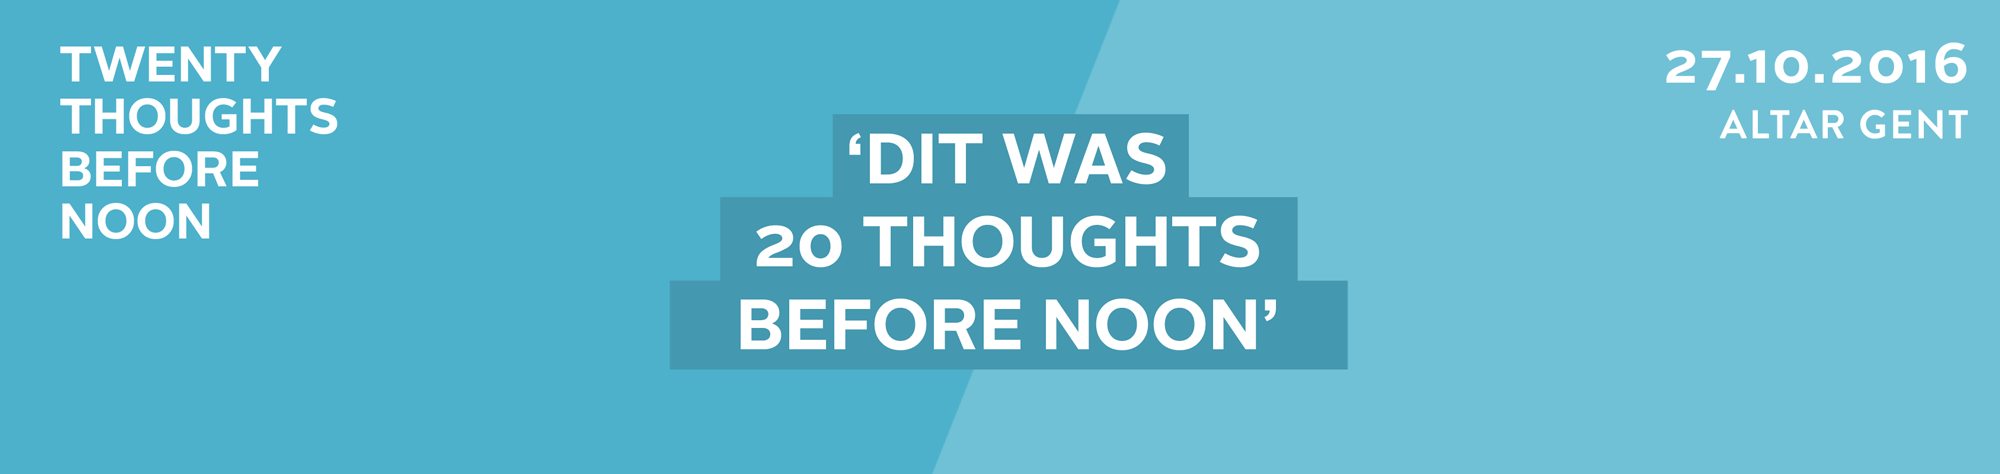 Dit was 20 thoughts before noon